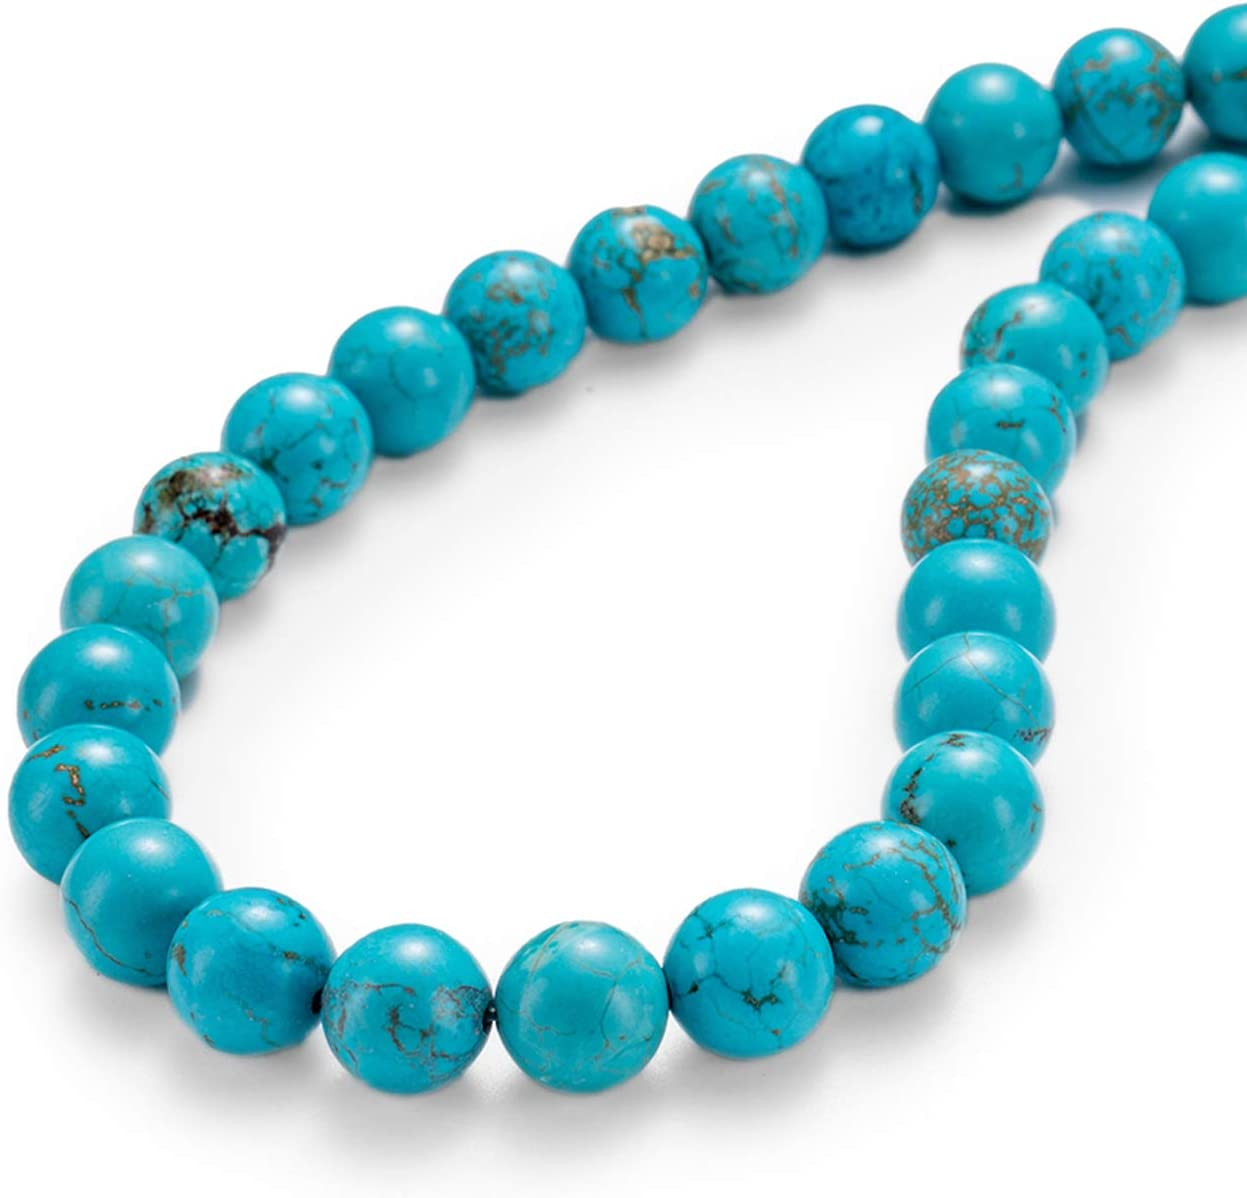 Turquoise Smooth Round Beaded Bracelet Natural Turquoise Gemstone Beaded Bracelet 7mm Turquoise Beaded Jewelry-8 Inch Turquoise Jewelry